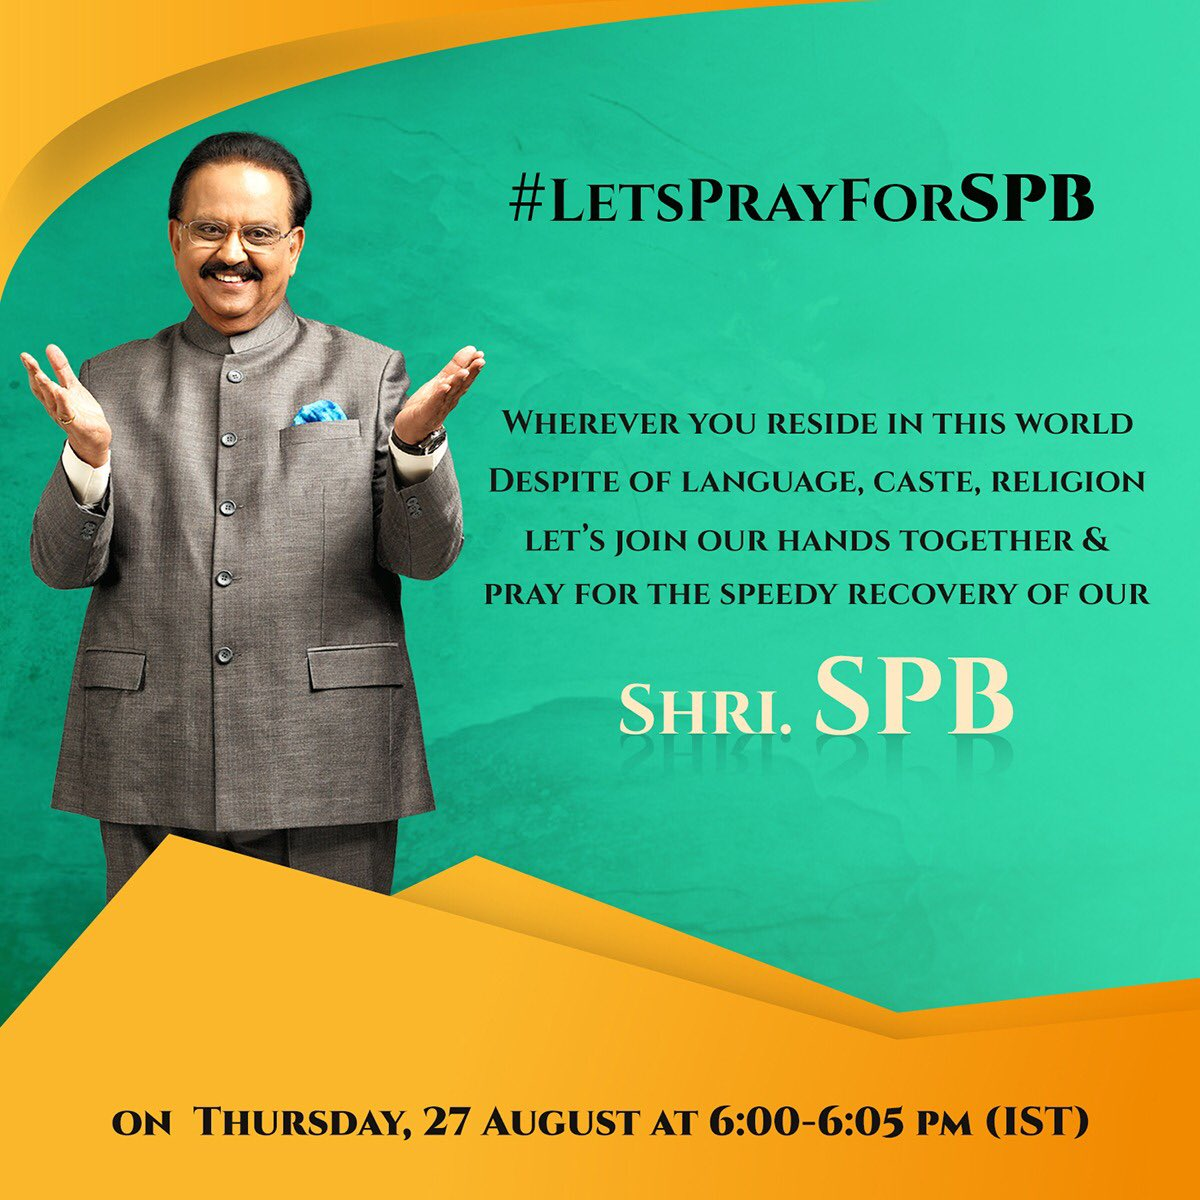 #LetsPrayForSPB  #Pray4SPB https://t.co/PiHON2G4z5